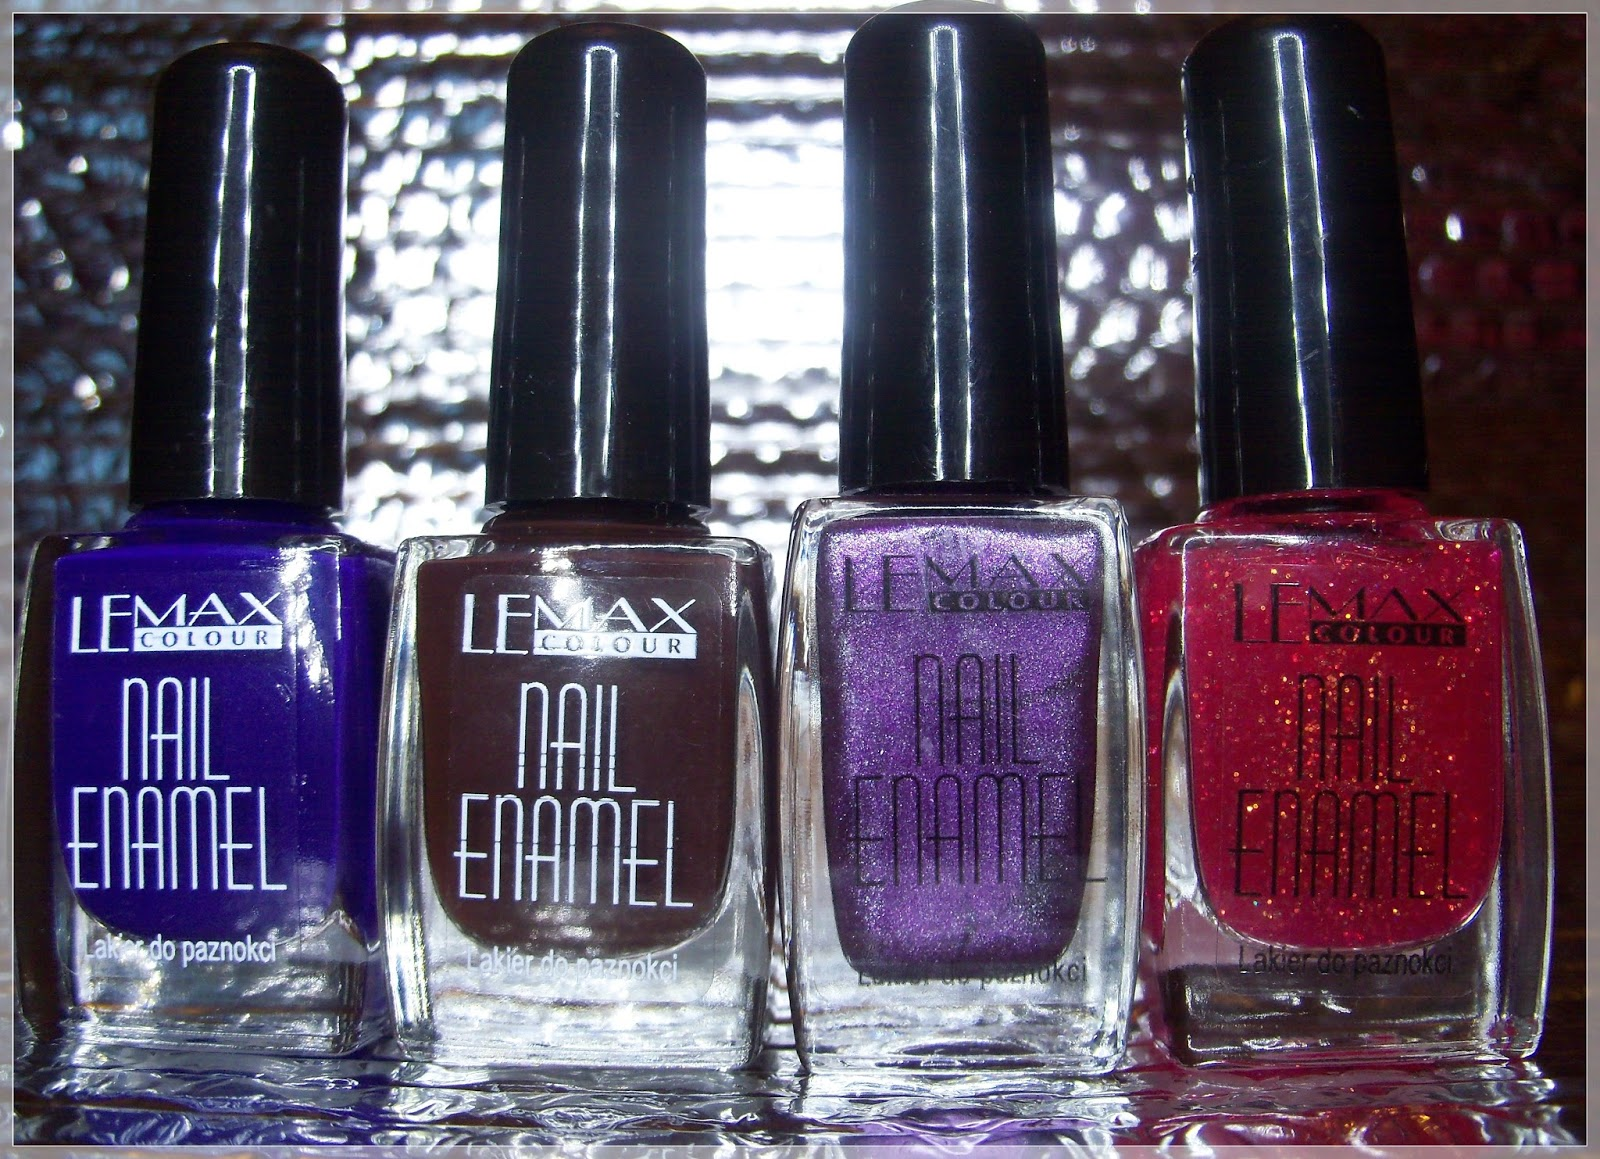 LEMAX COLOUR NAIL ENAMEL